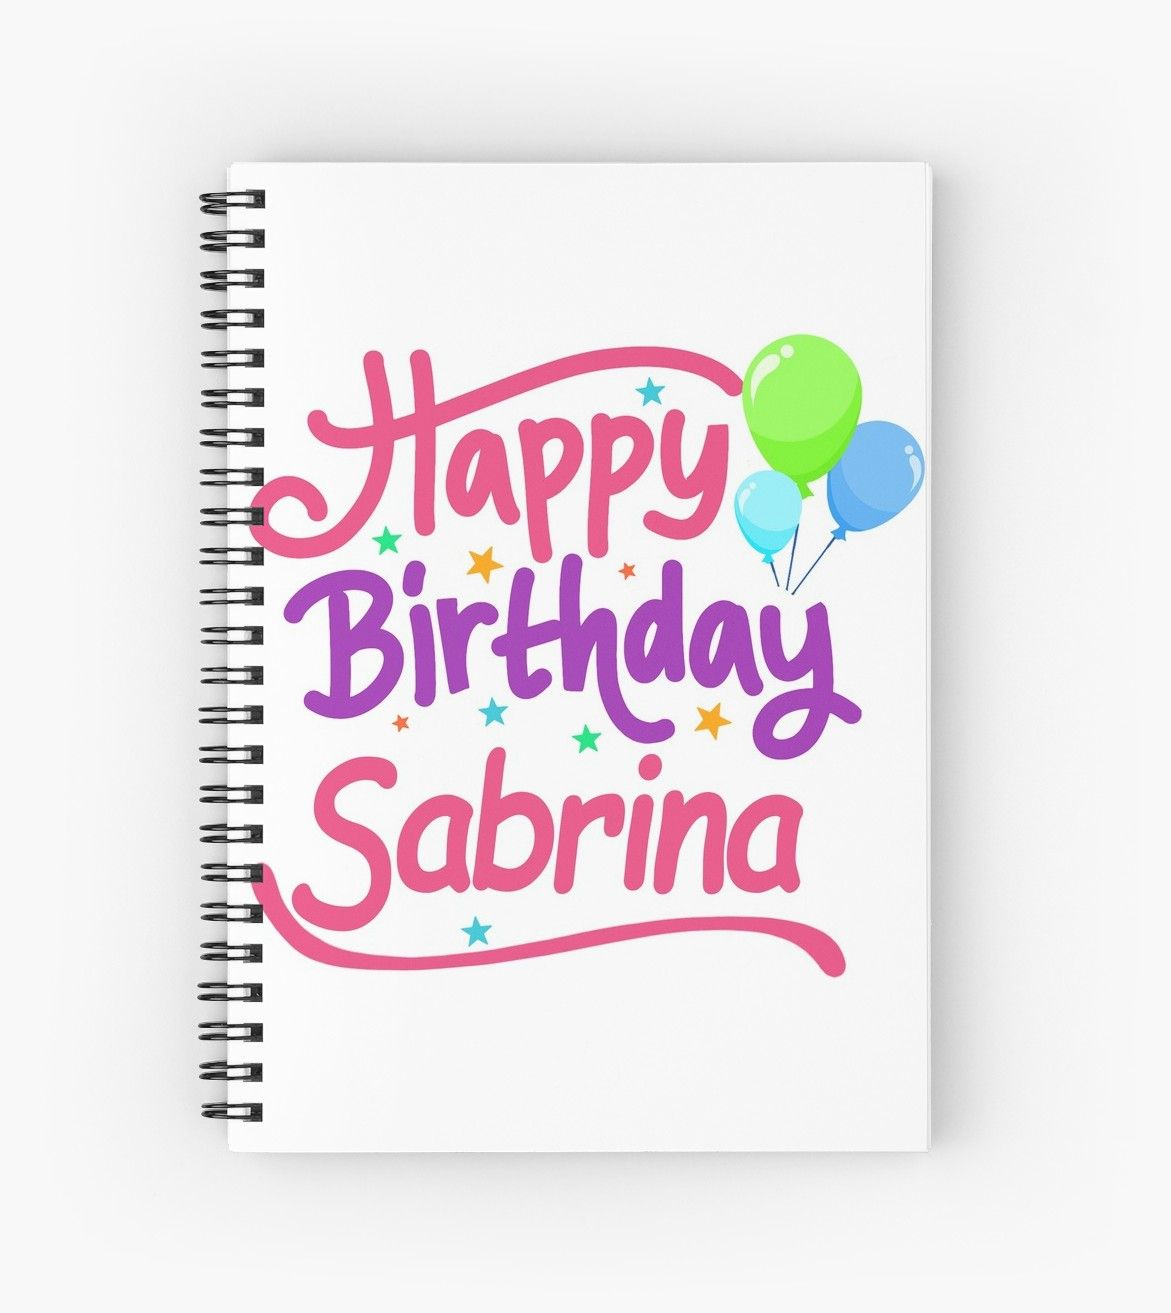 Happy Birthday Sabrina Spiralblock Von Pm Names Glucklicher